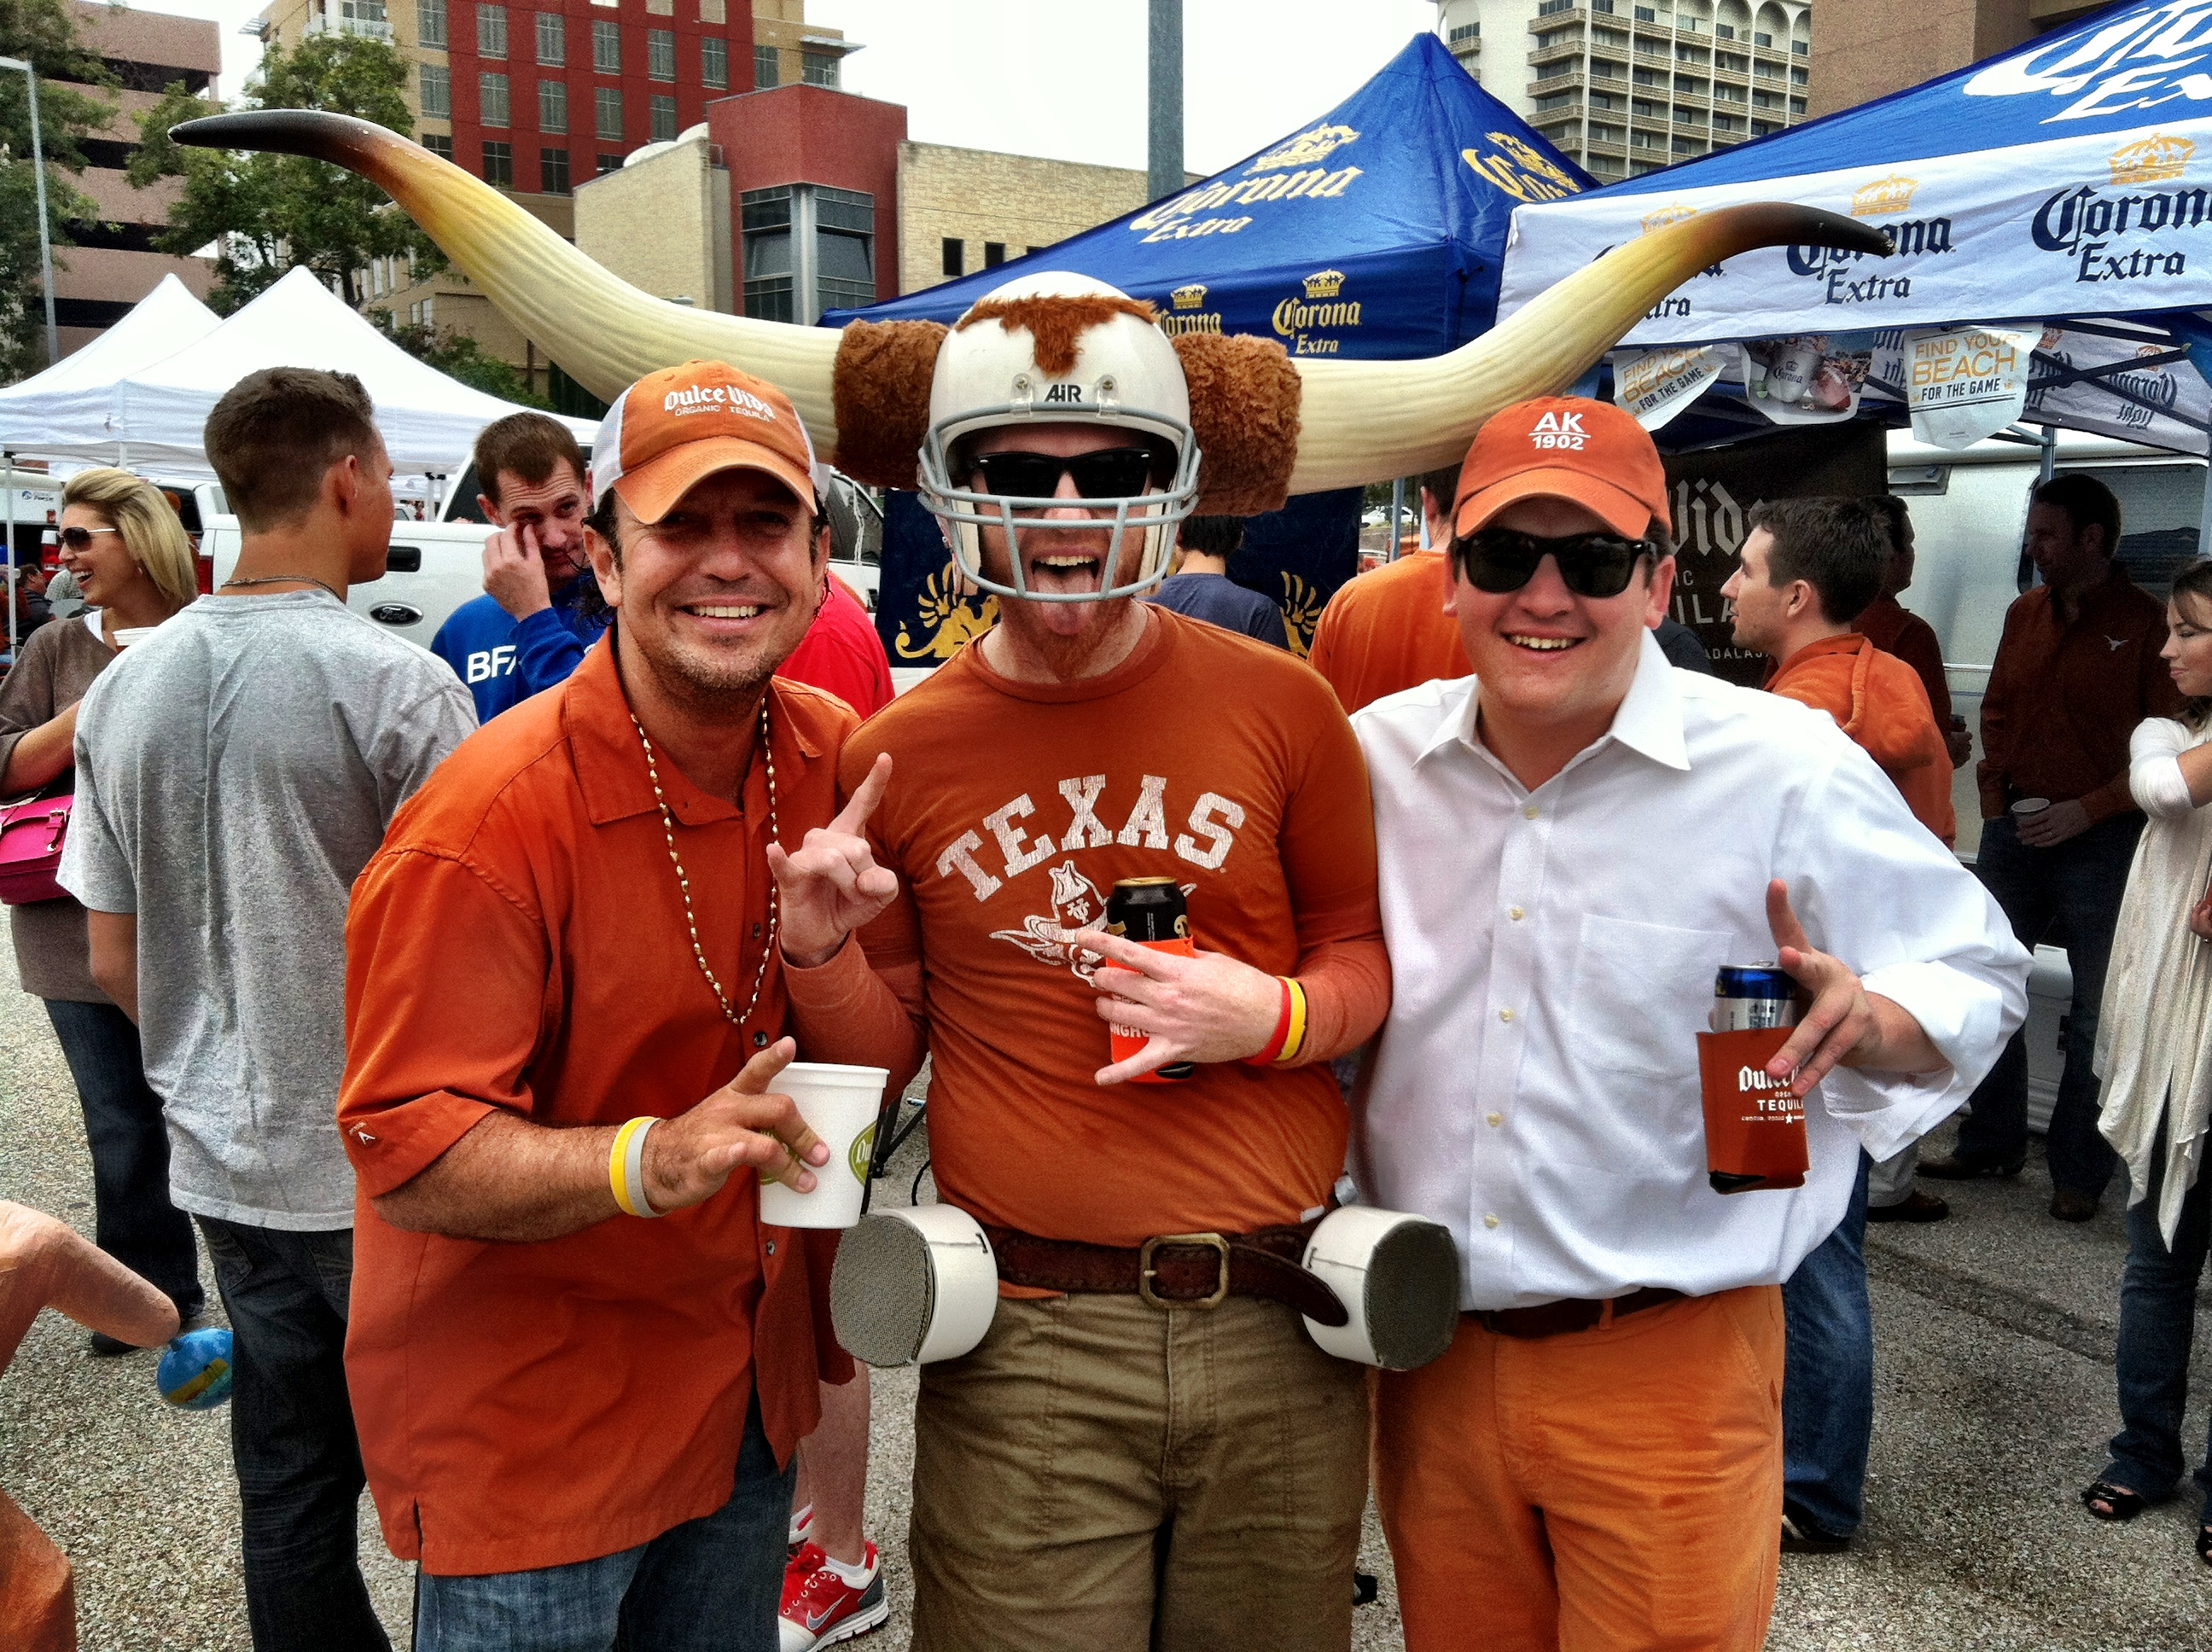 Longhorn fans tailgating at its best - courtesy of randallmetting.com